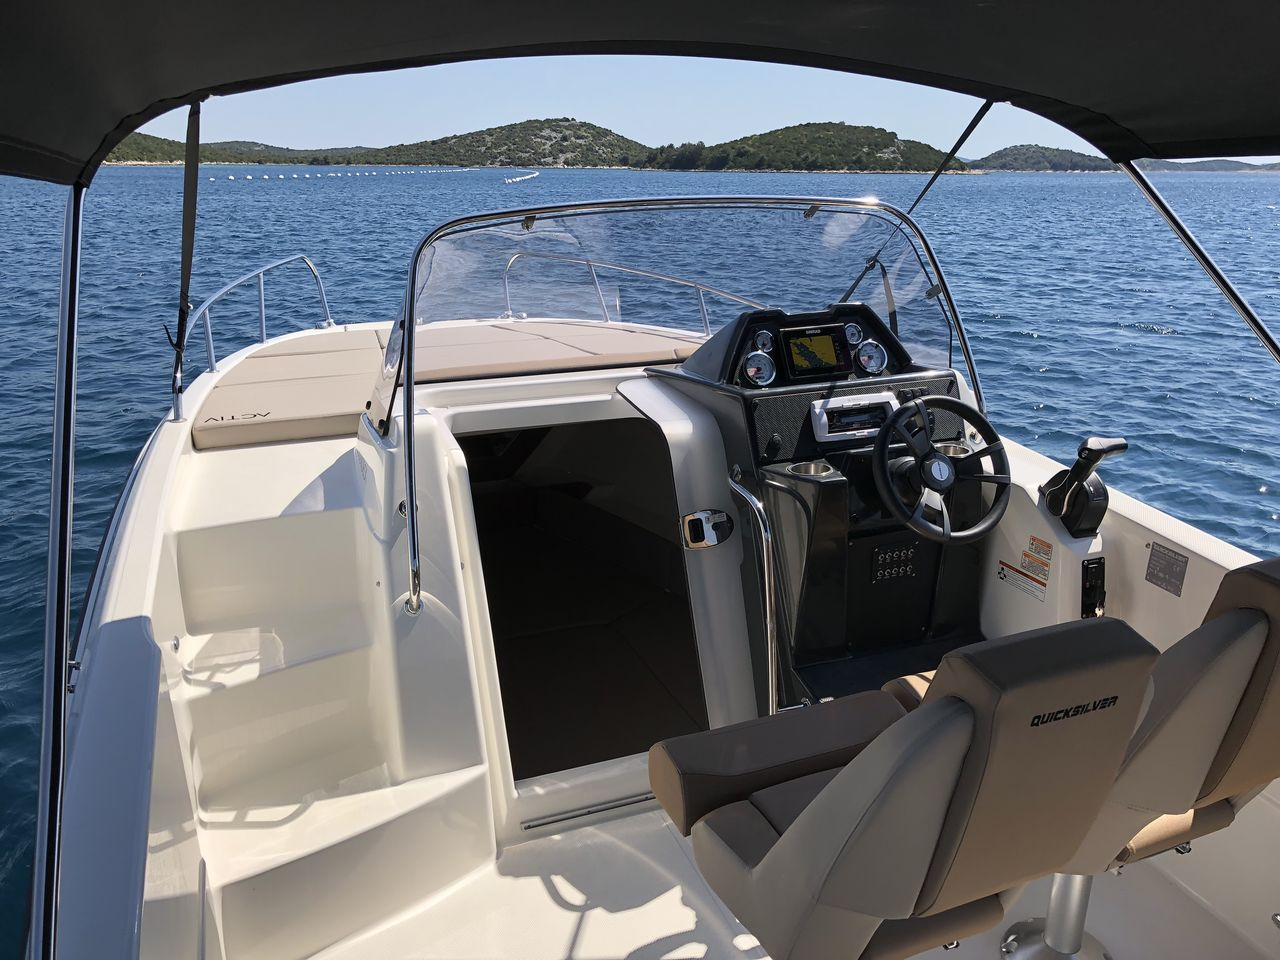 Quicksilver 755 Sundeck - image 3